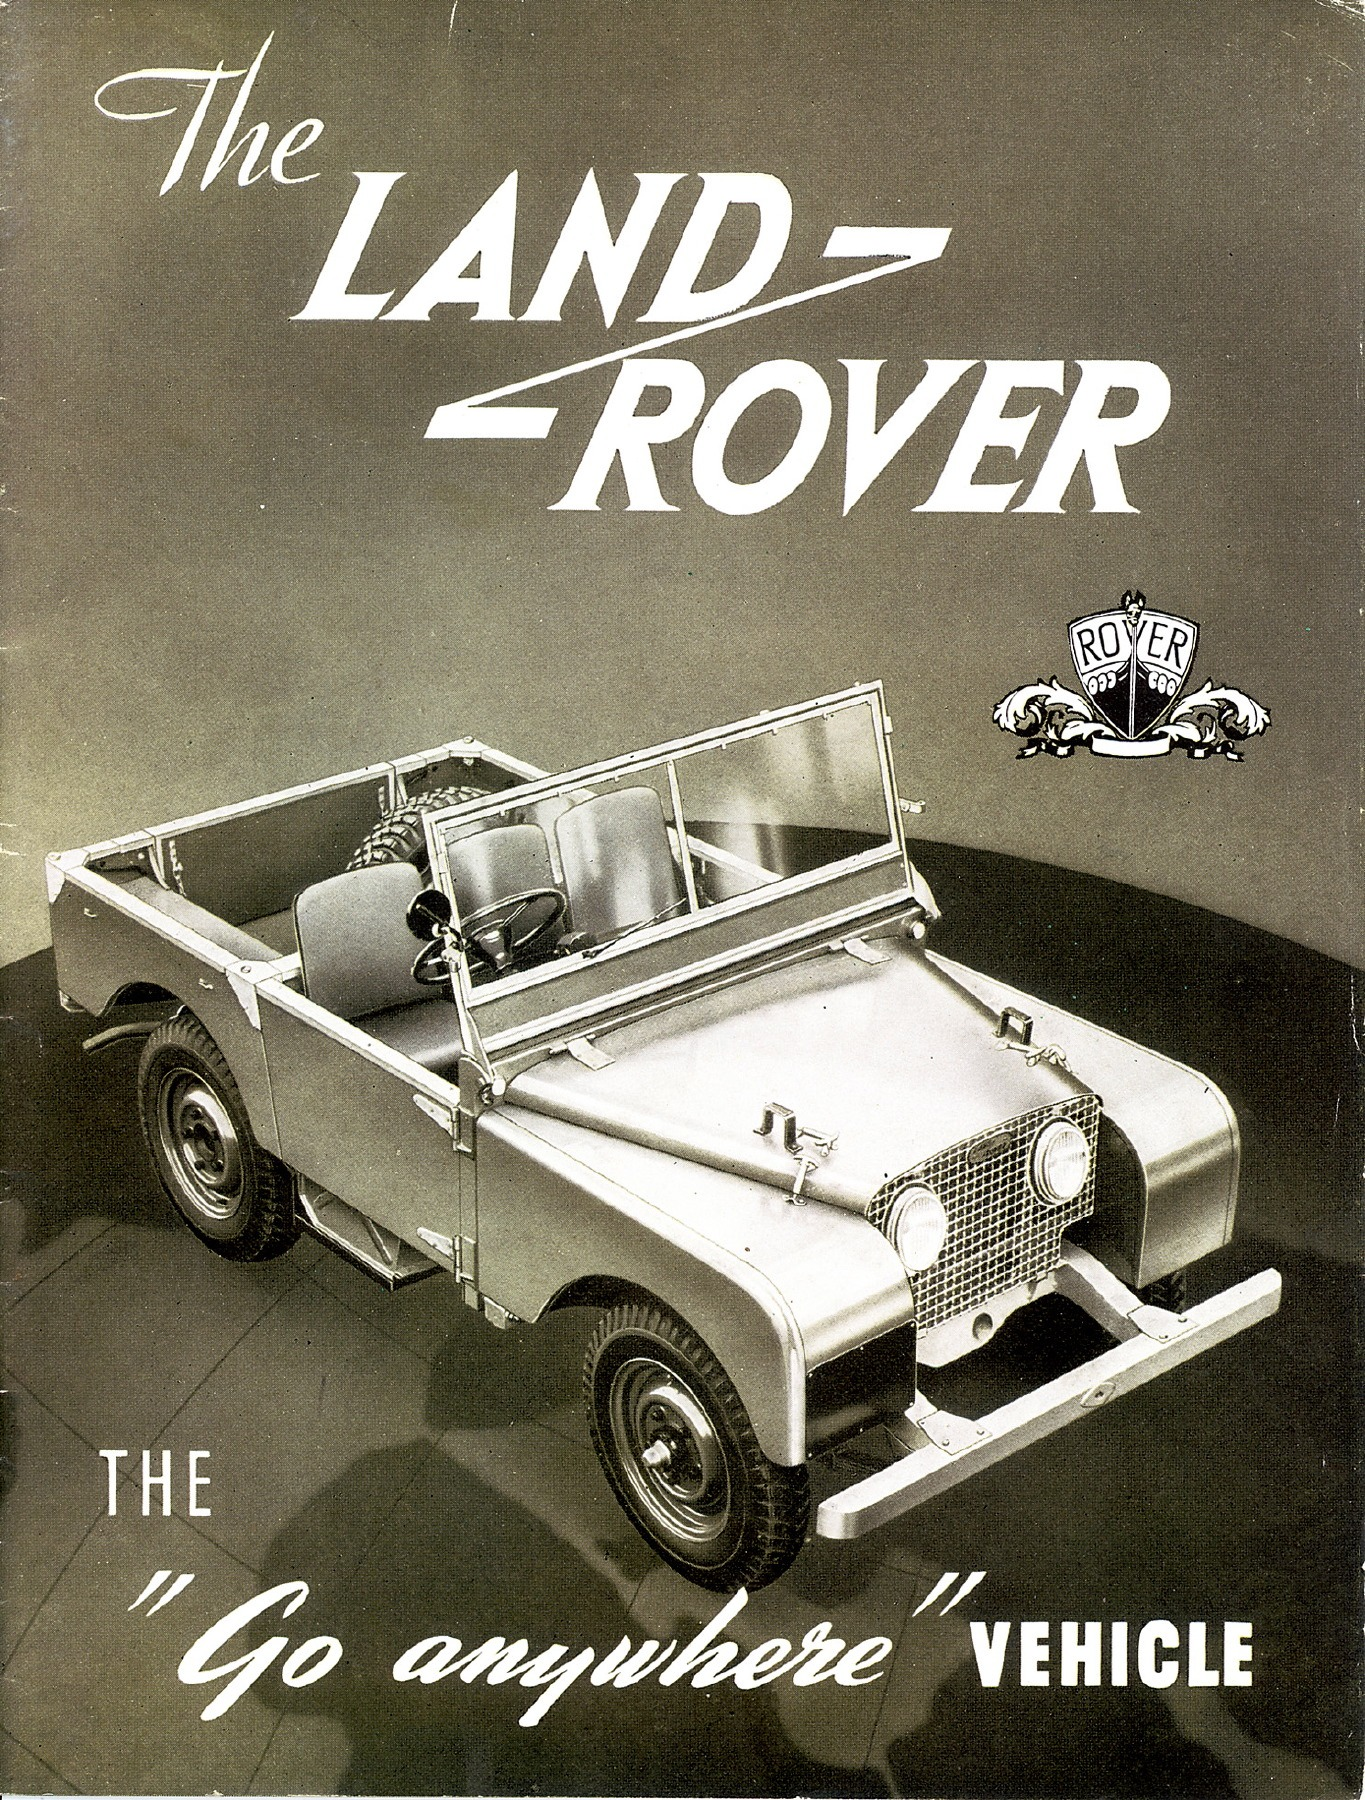 Land Rover advertisement